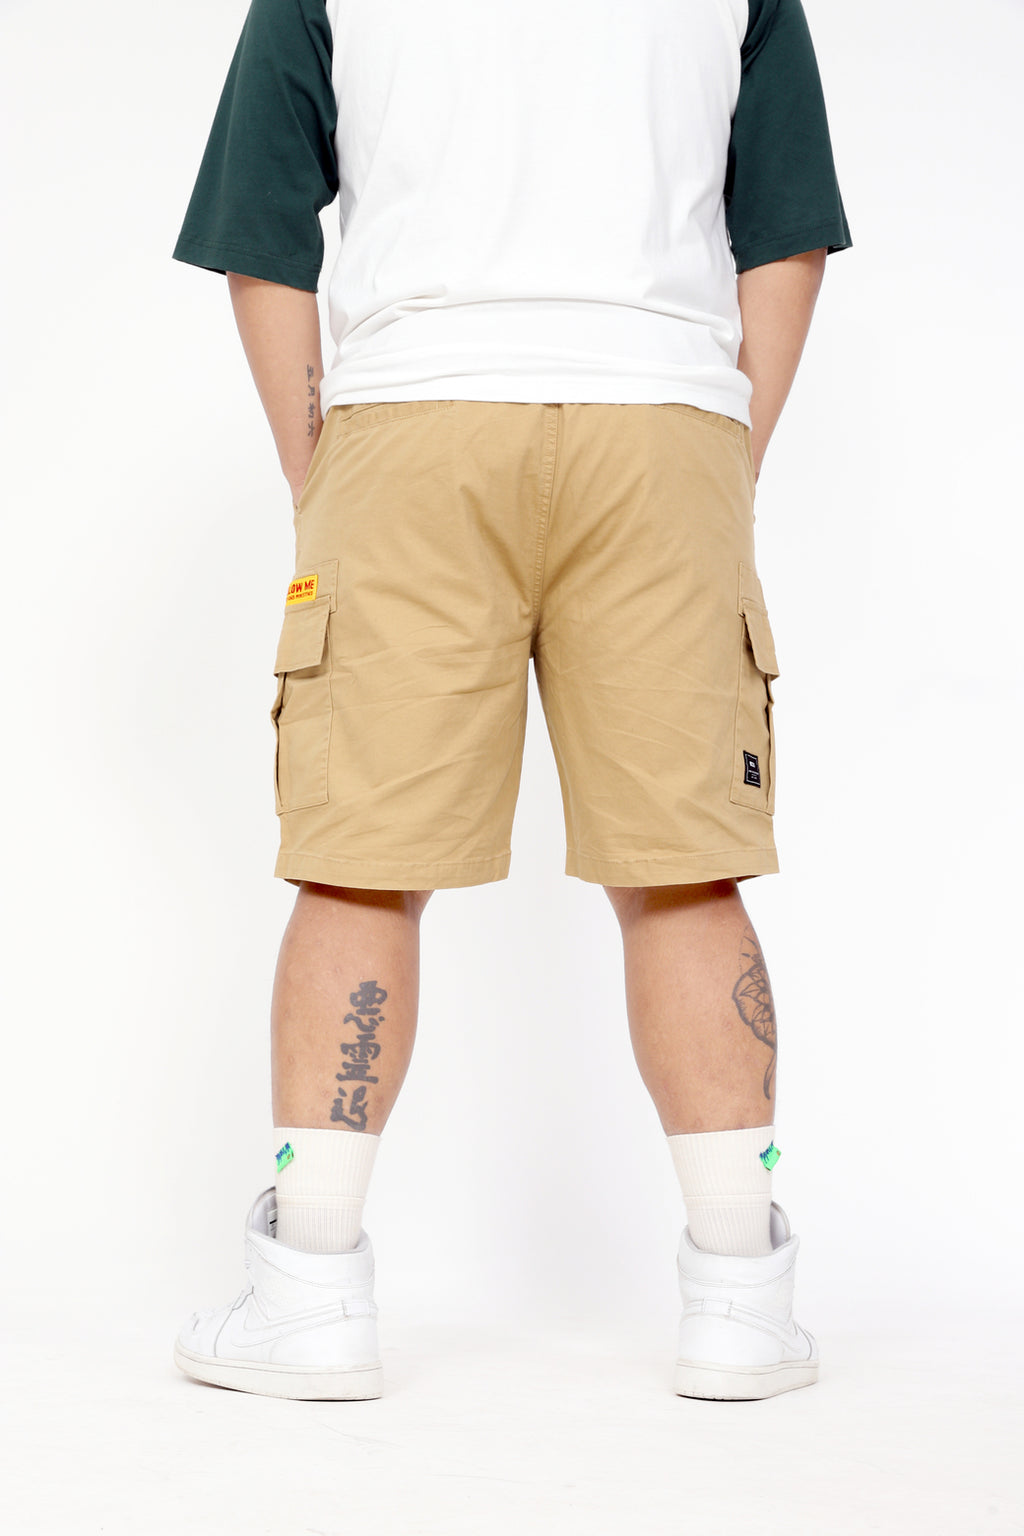 Cotton Cargo Shorts - T02JK4273